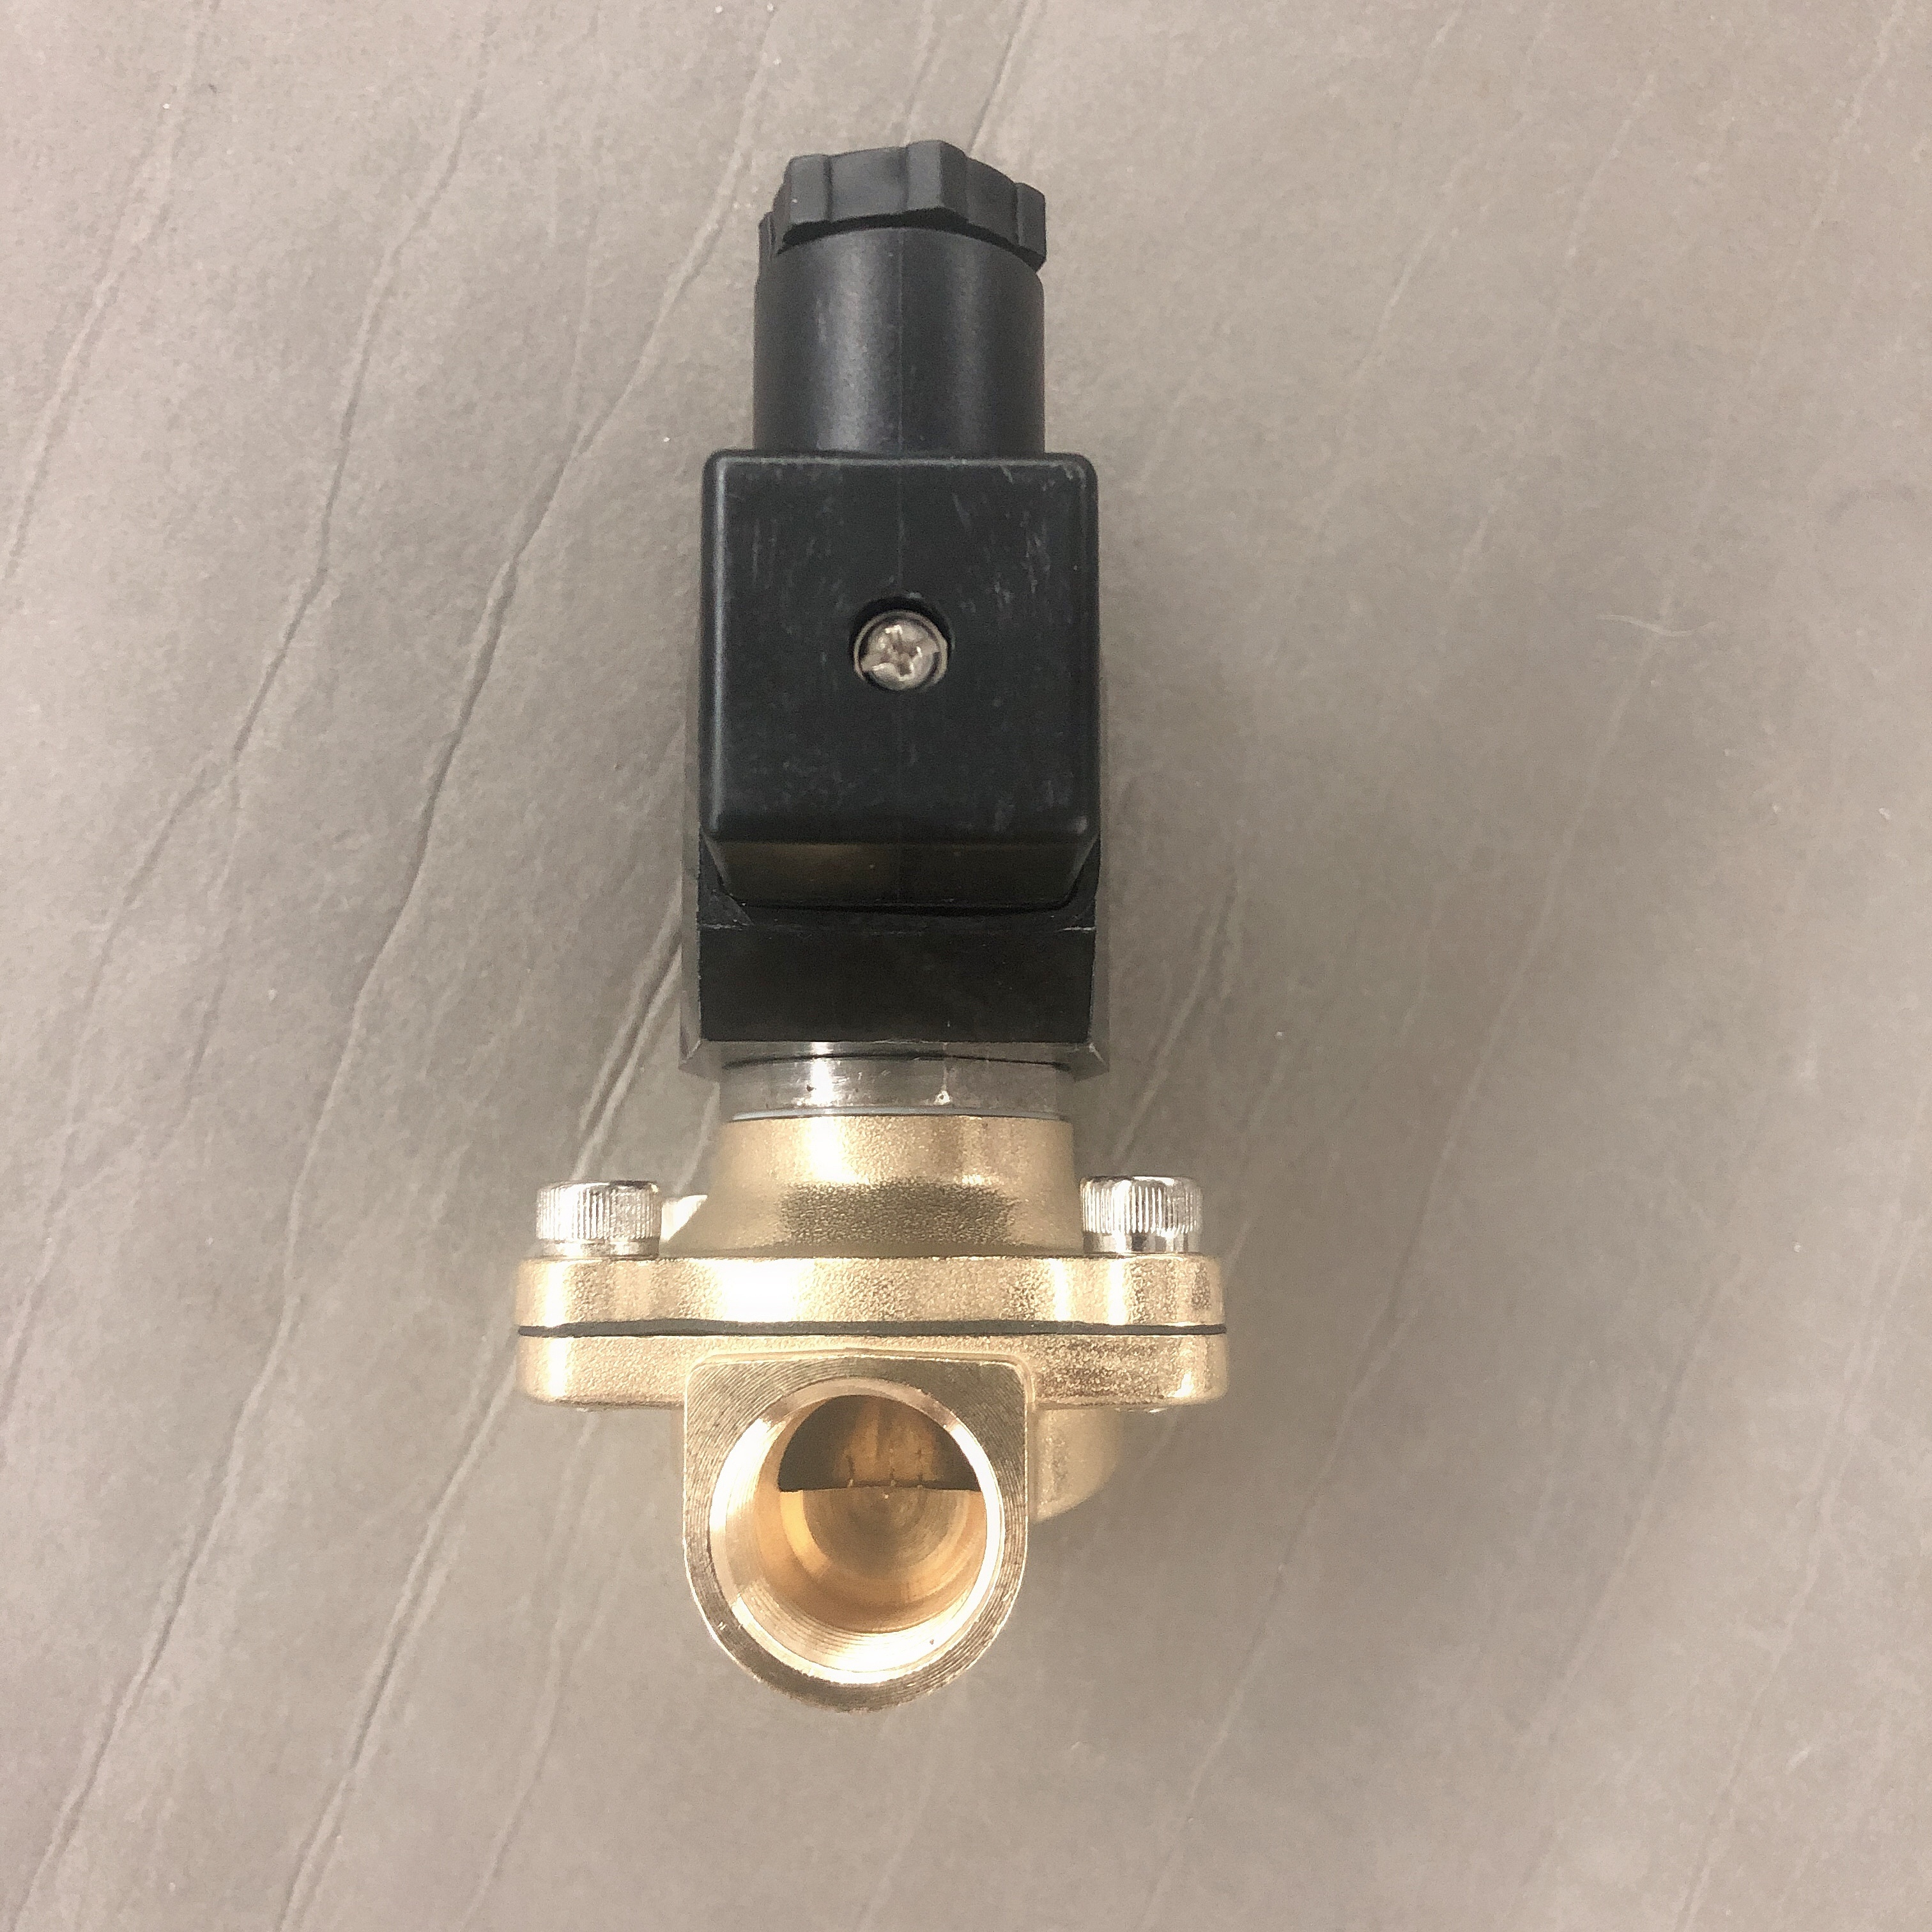 115-volt Thermalrite Blast Chillers R30-0165UL-26628 Solenoid Valve Body Coil